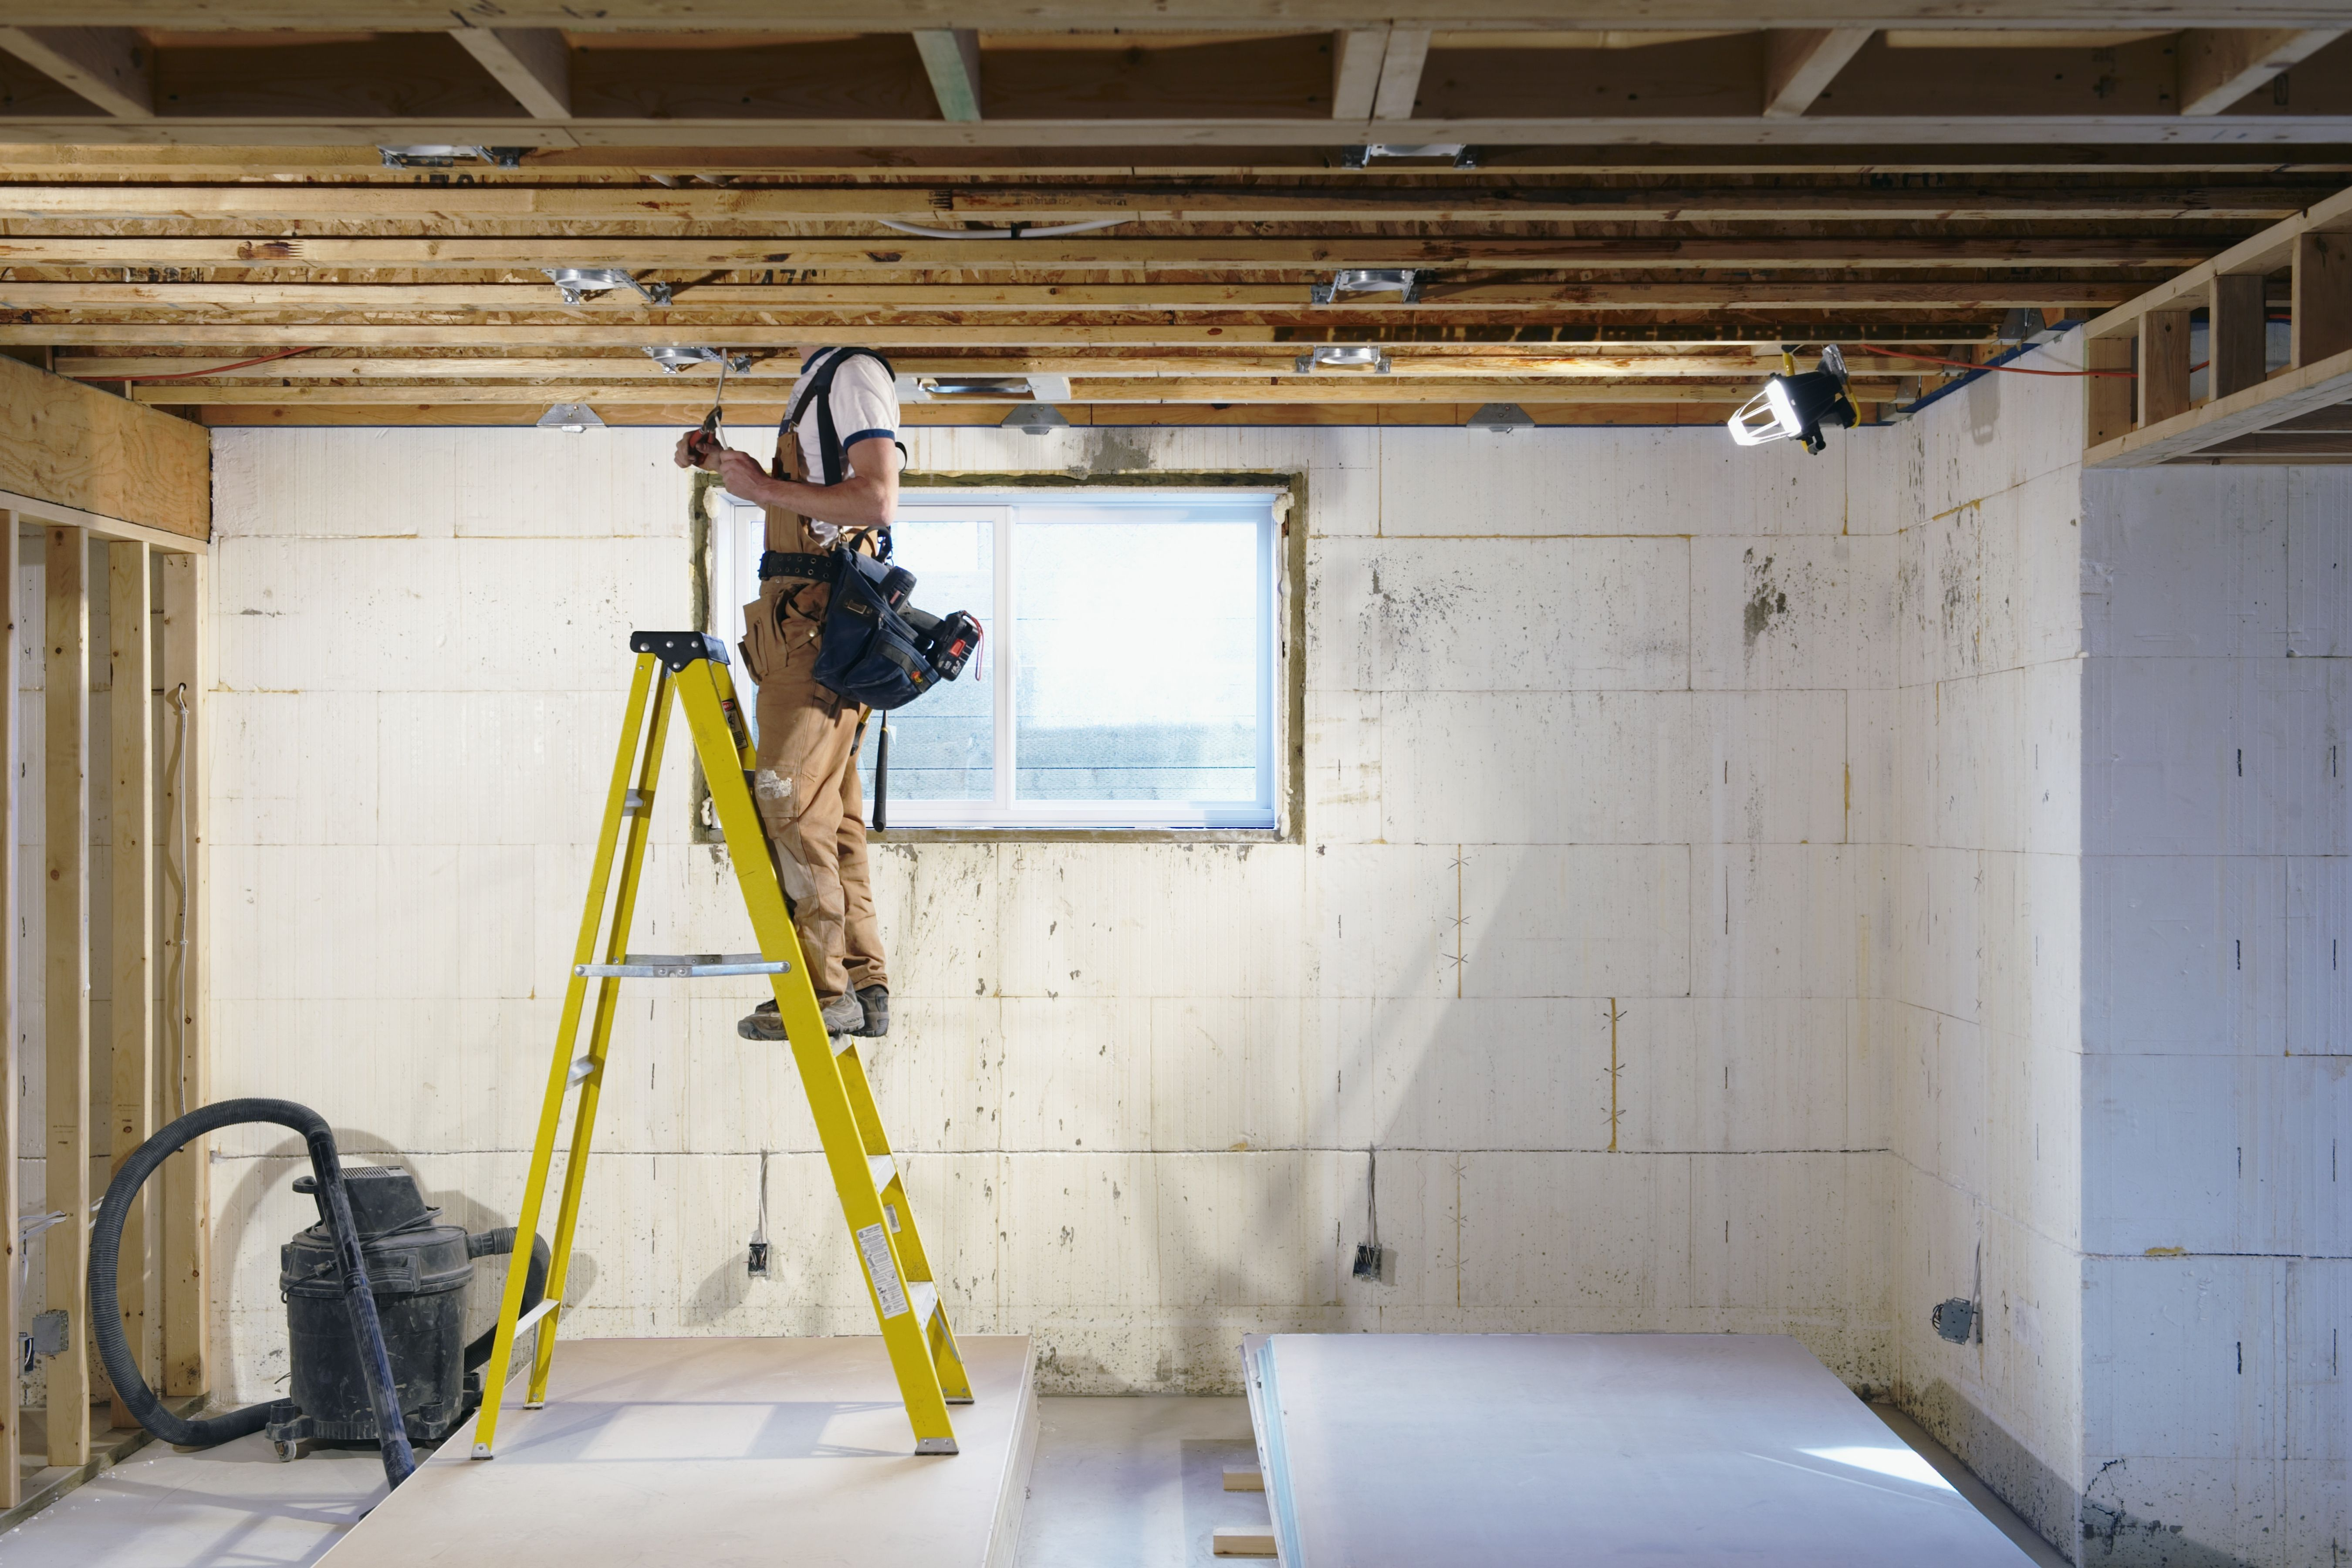 Man on ladder in new house